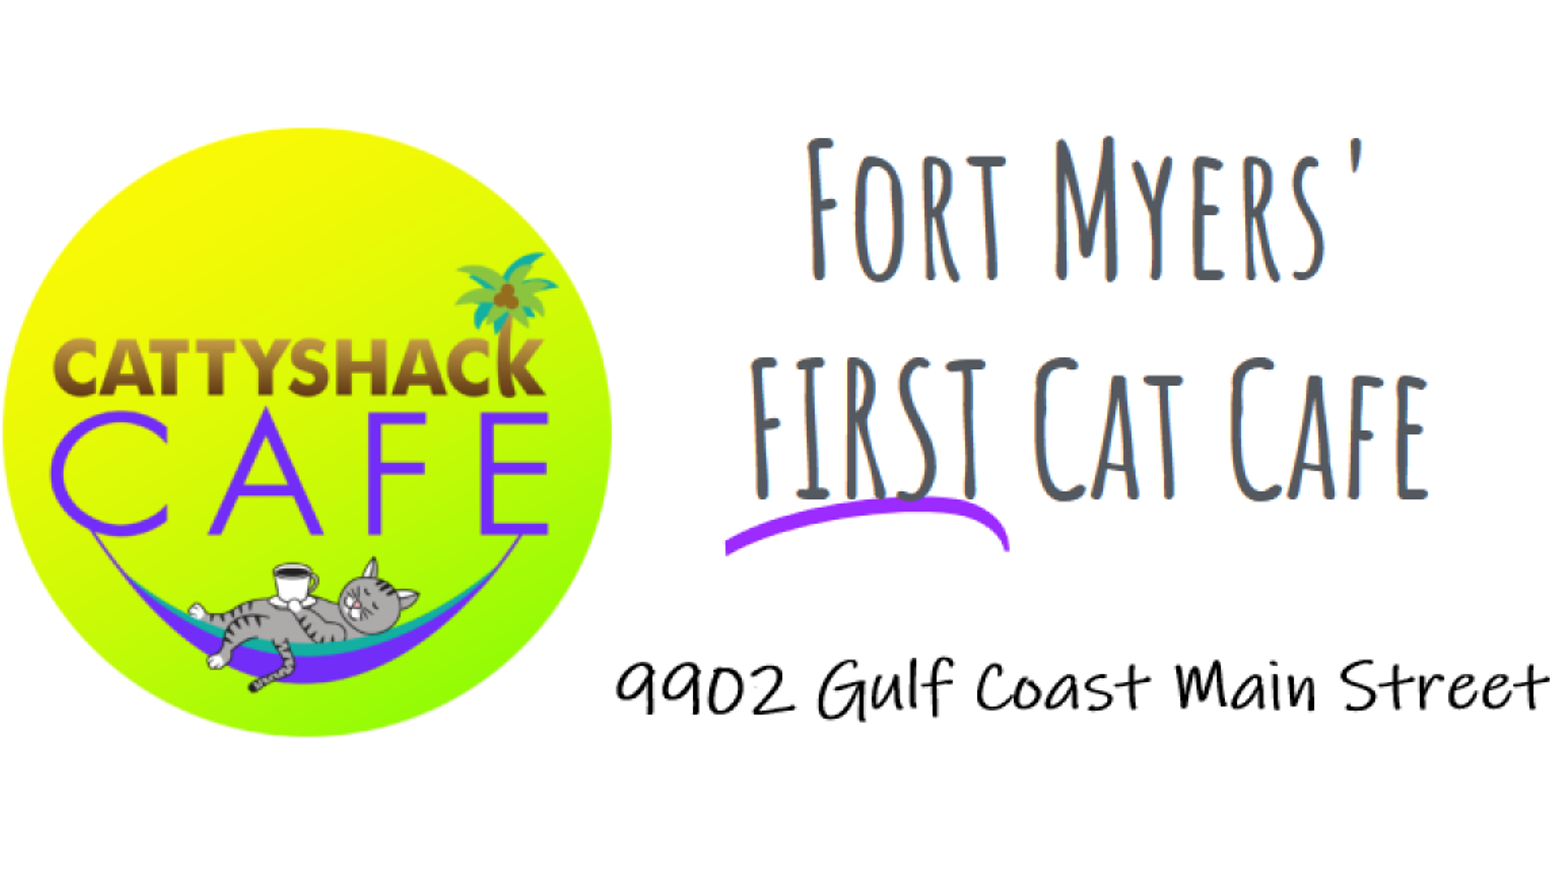 A cage free environment for adoptable rescue cats with coffee, pastries, beer, wine and community events like cat yoga and live music!